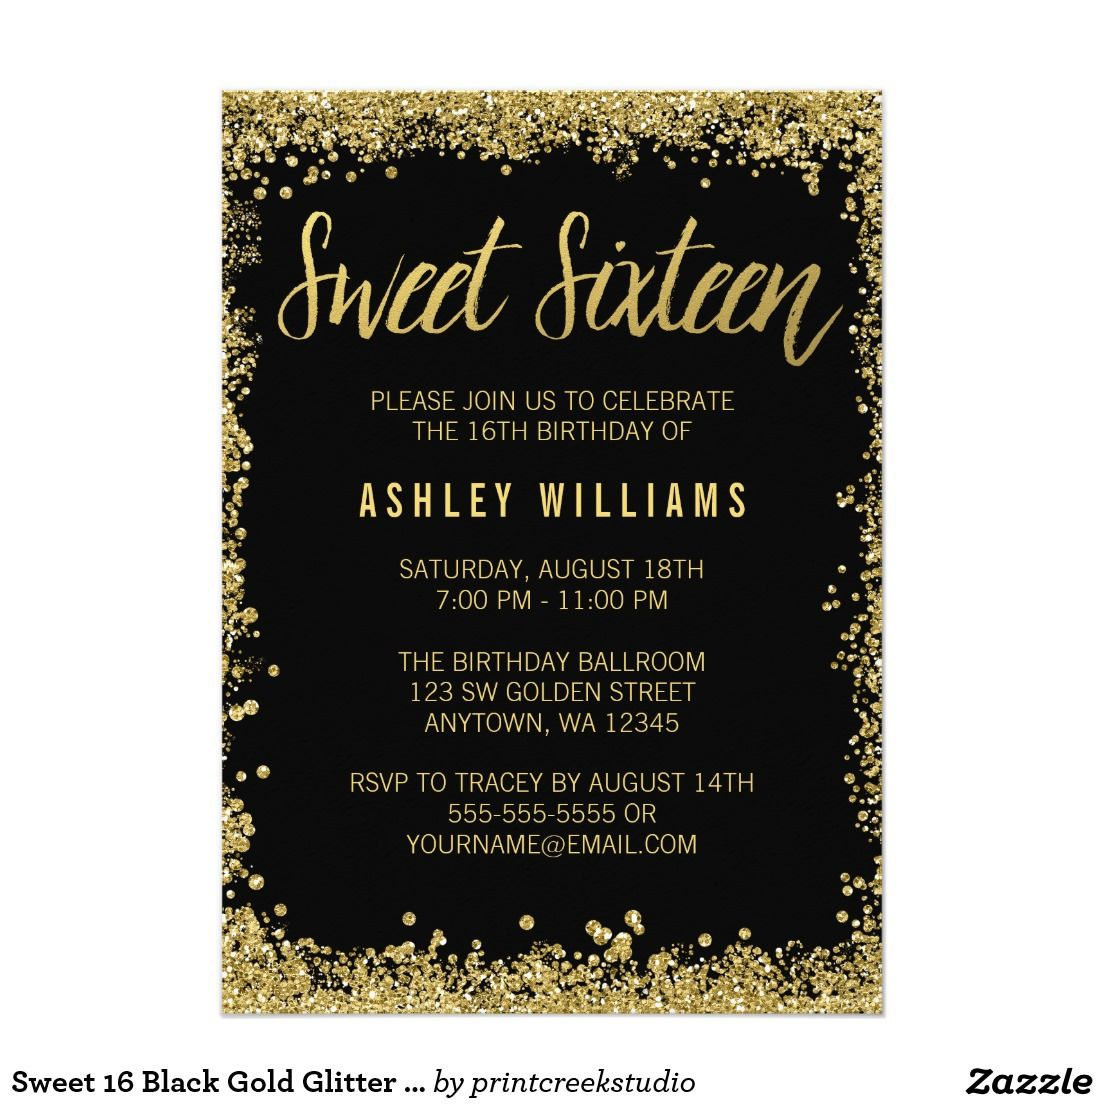 Sweet 16 Black Gold Glitter Birthday Invitation Zazzle Com Glitter Invitations Birthday Sweet Sixteen Birthday Party Invitations 16th Birthday Invitations